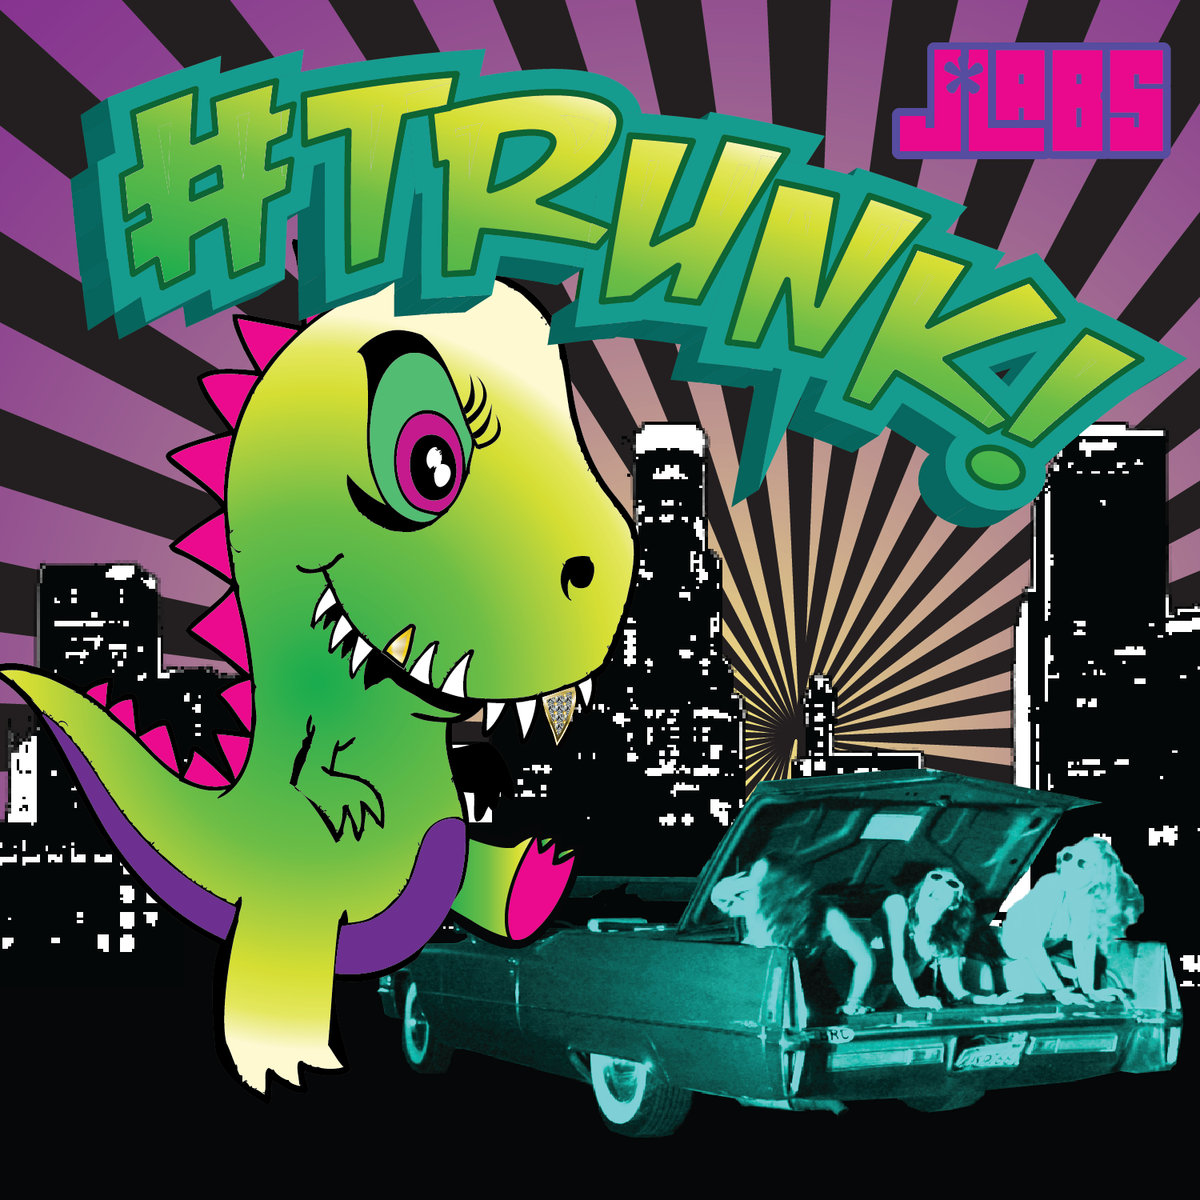 J*Labs - Zillah Soundbwoy @ '#TRUNK' album (bass, electronic)